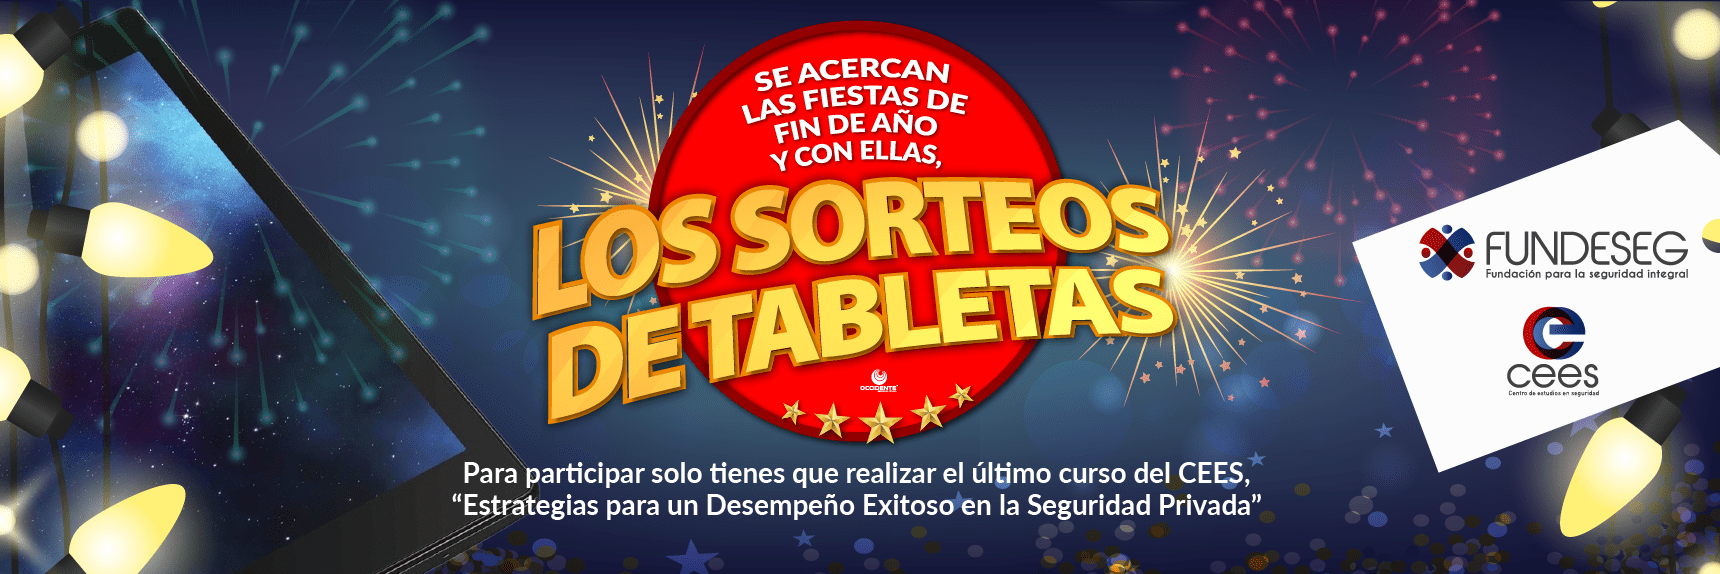 tablets-cees